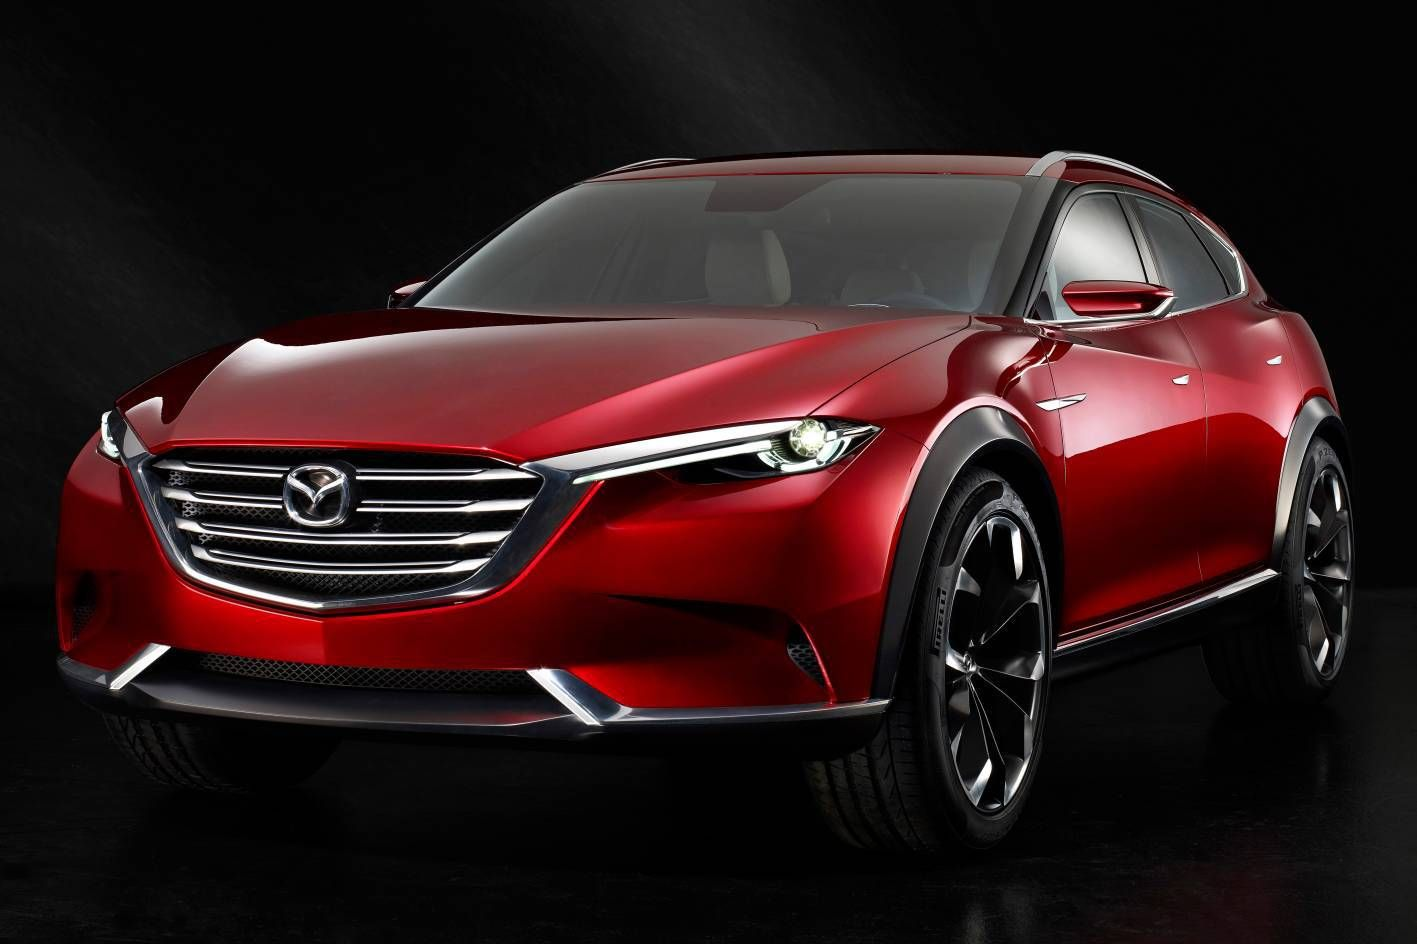 2019 Mazda CX9 Signature Review Mazda cx 9, Mazda, Best